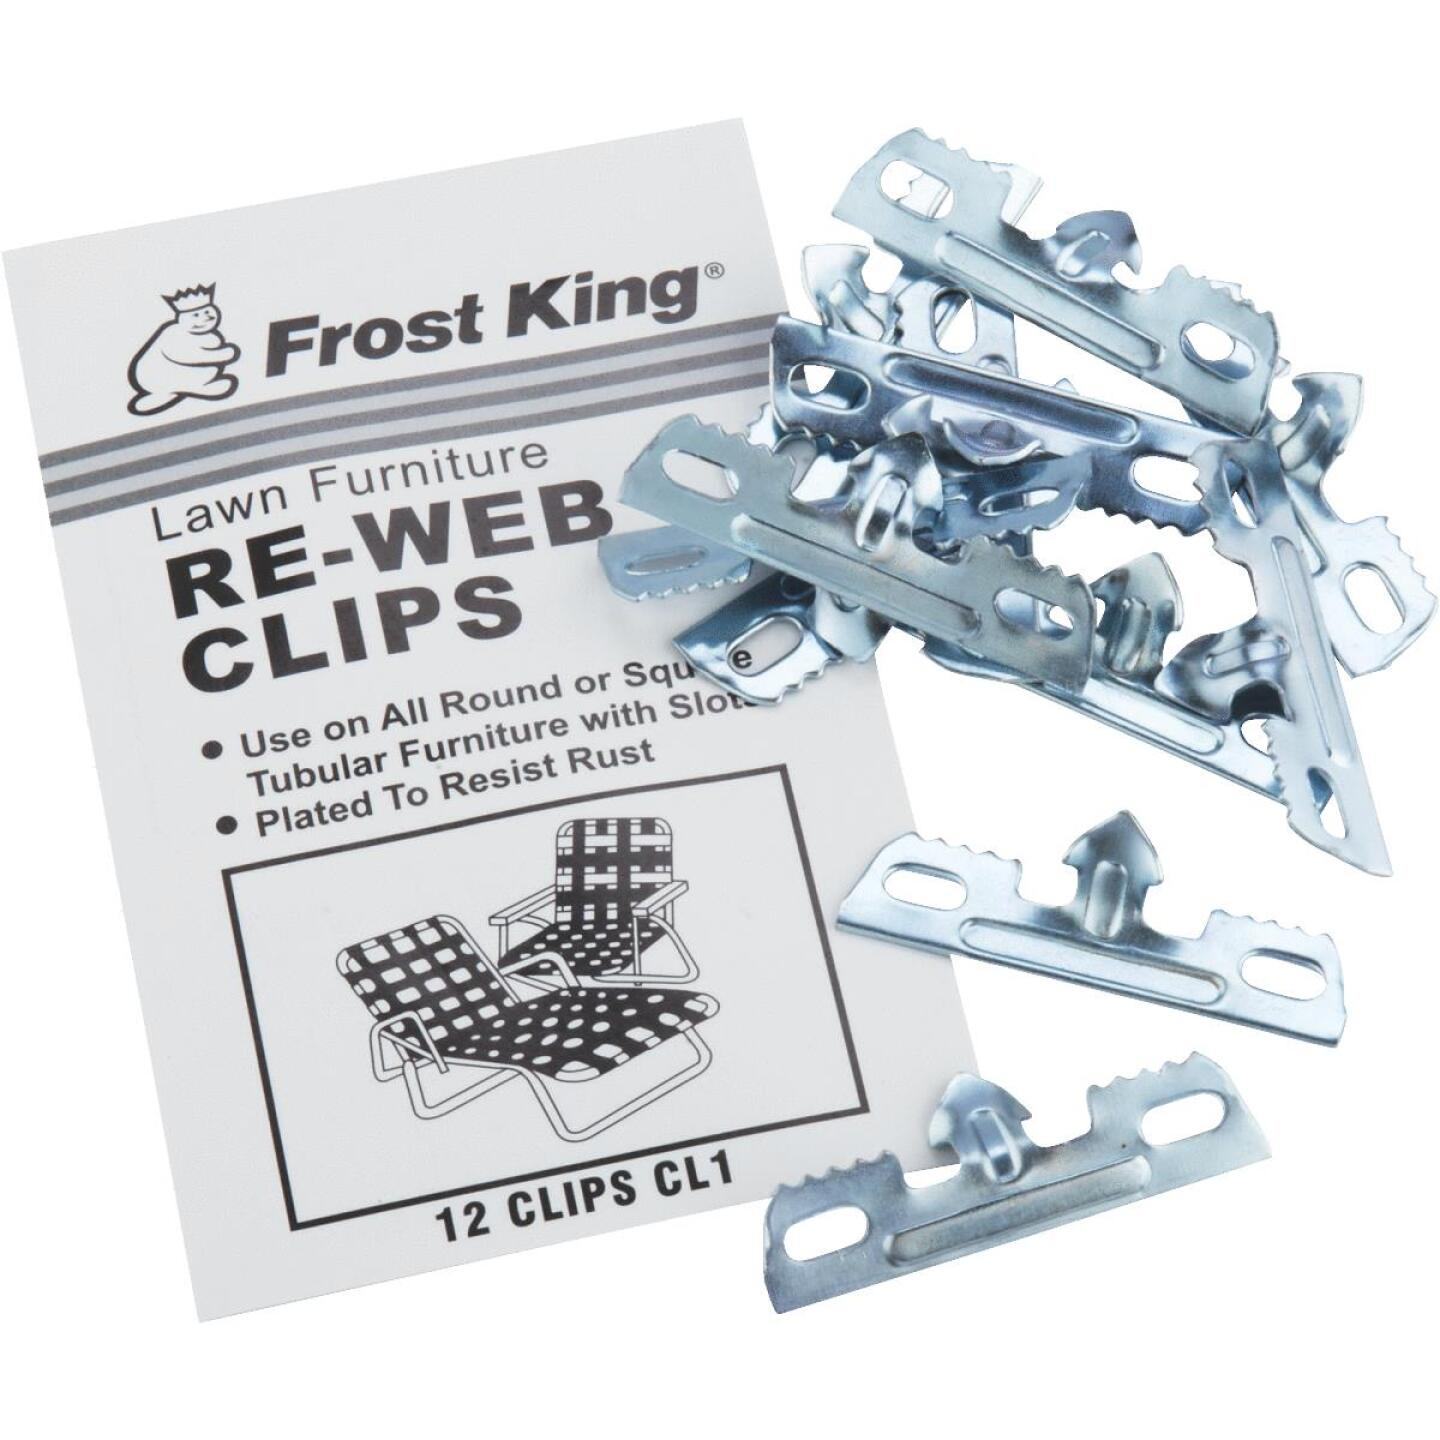 Frost King Plated Outdoor Chair Webbing Clips (12-Pack) Image 2